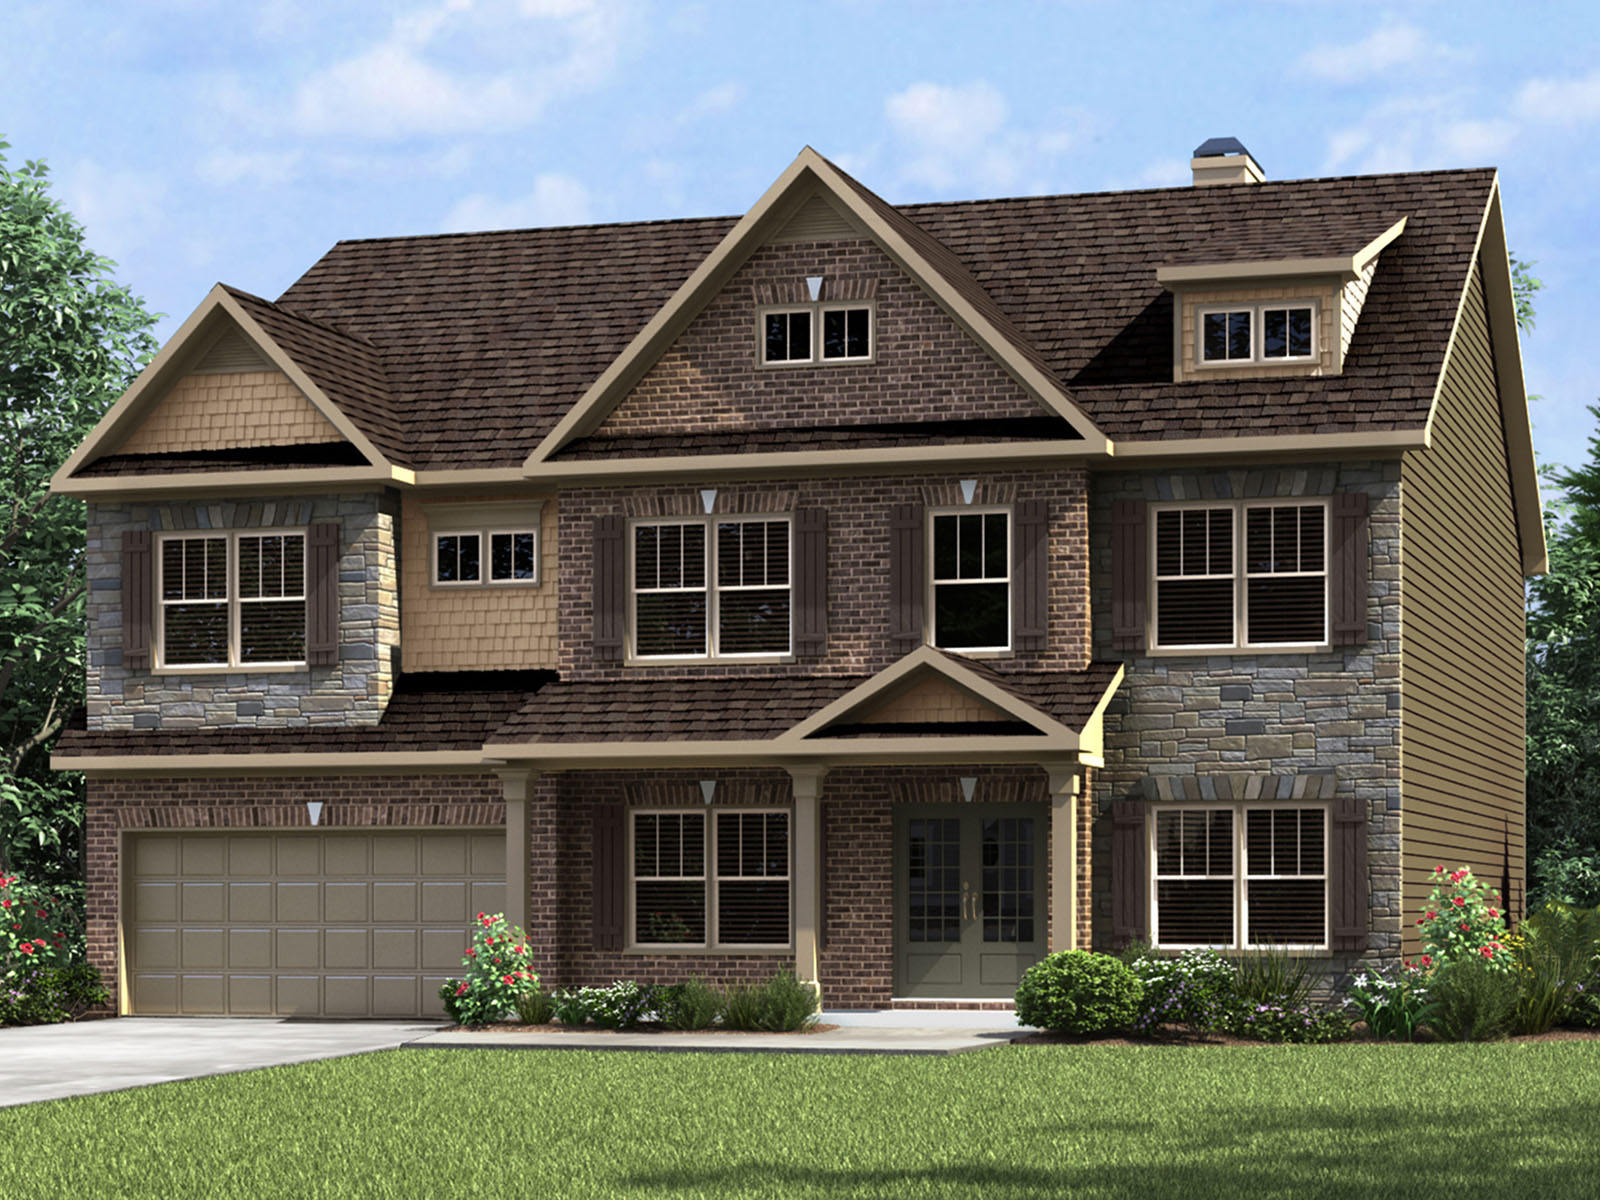 Patterson Model 4br 3ba Homes For Sale In Simpsonville